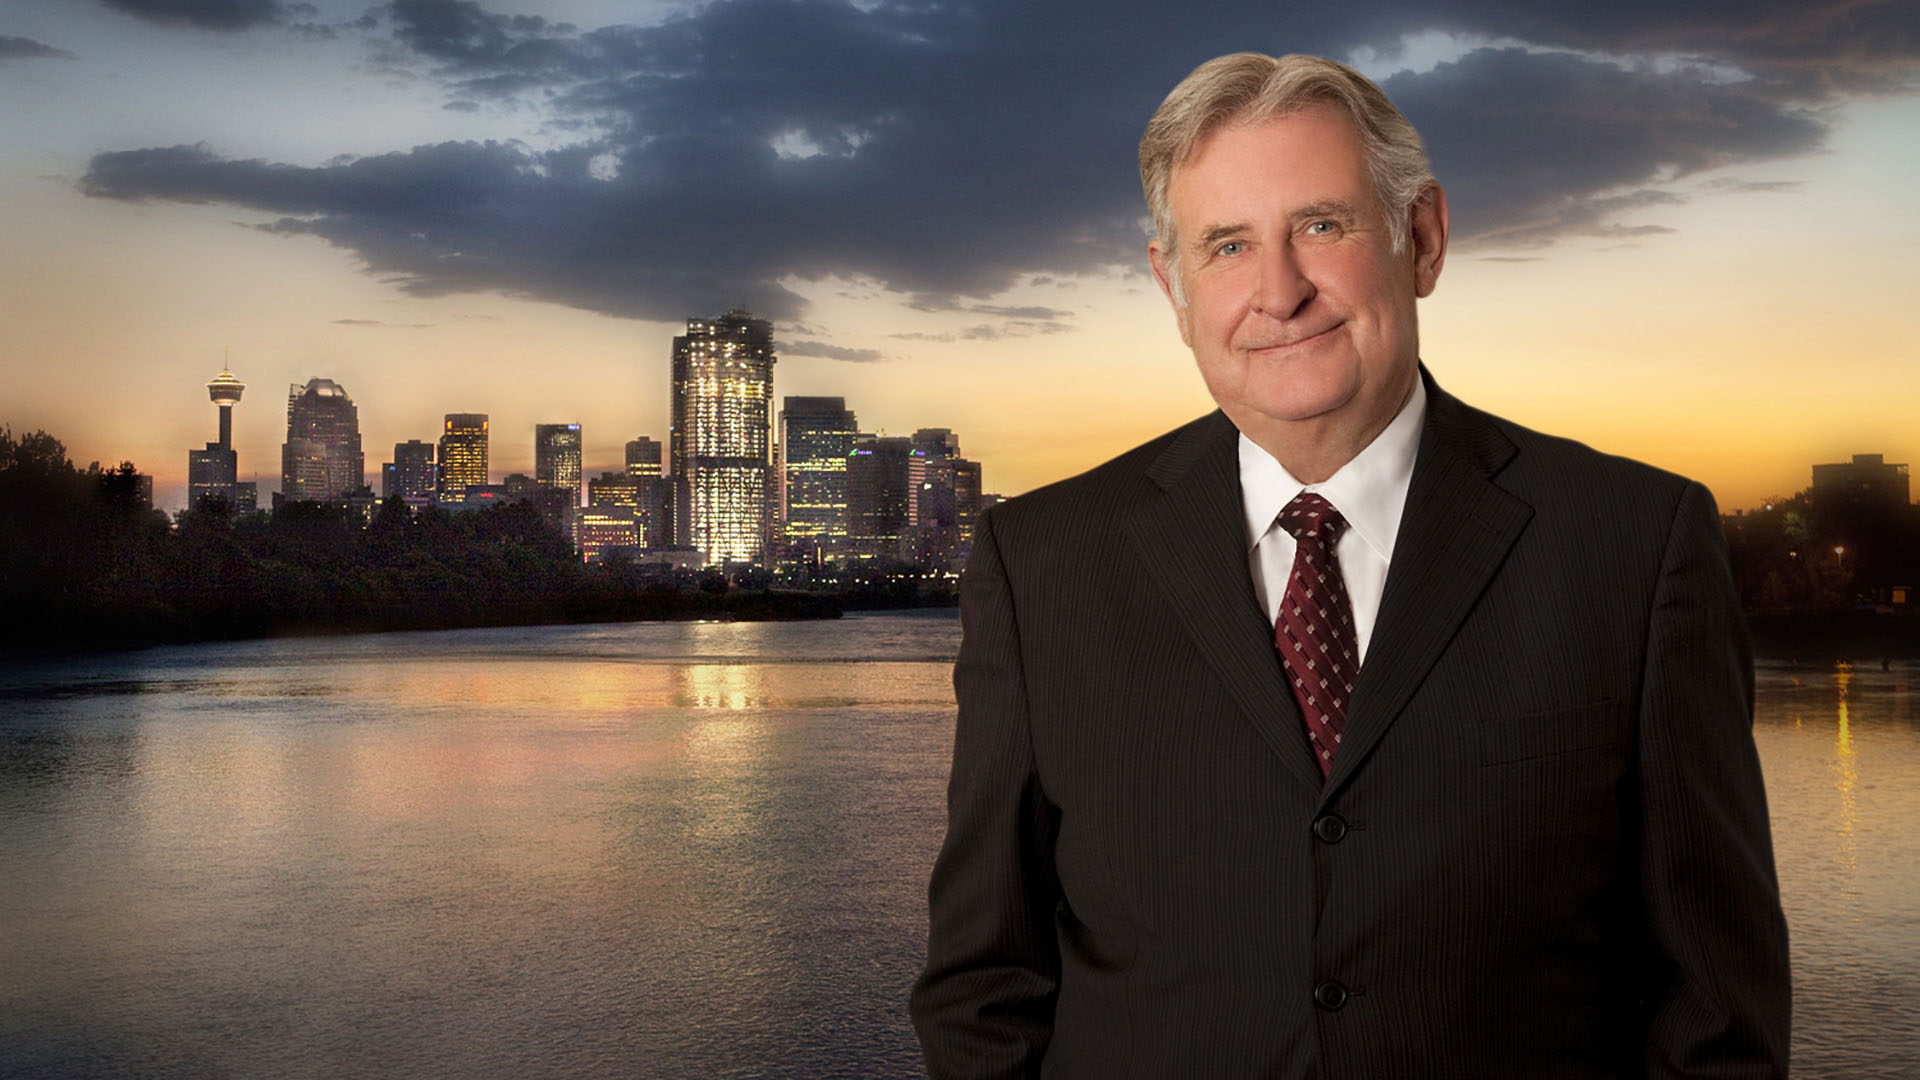 Alberta Order of Excellence member Ralph Klein